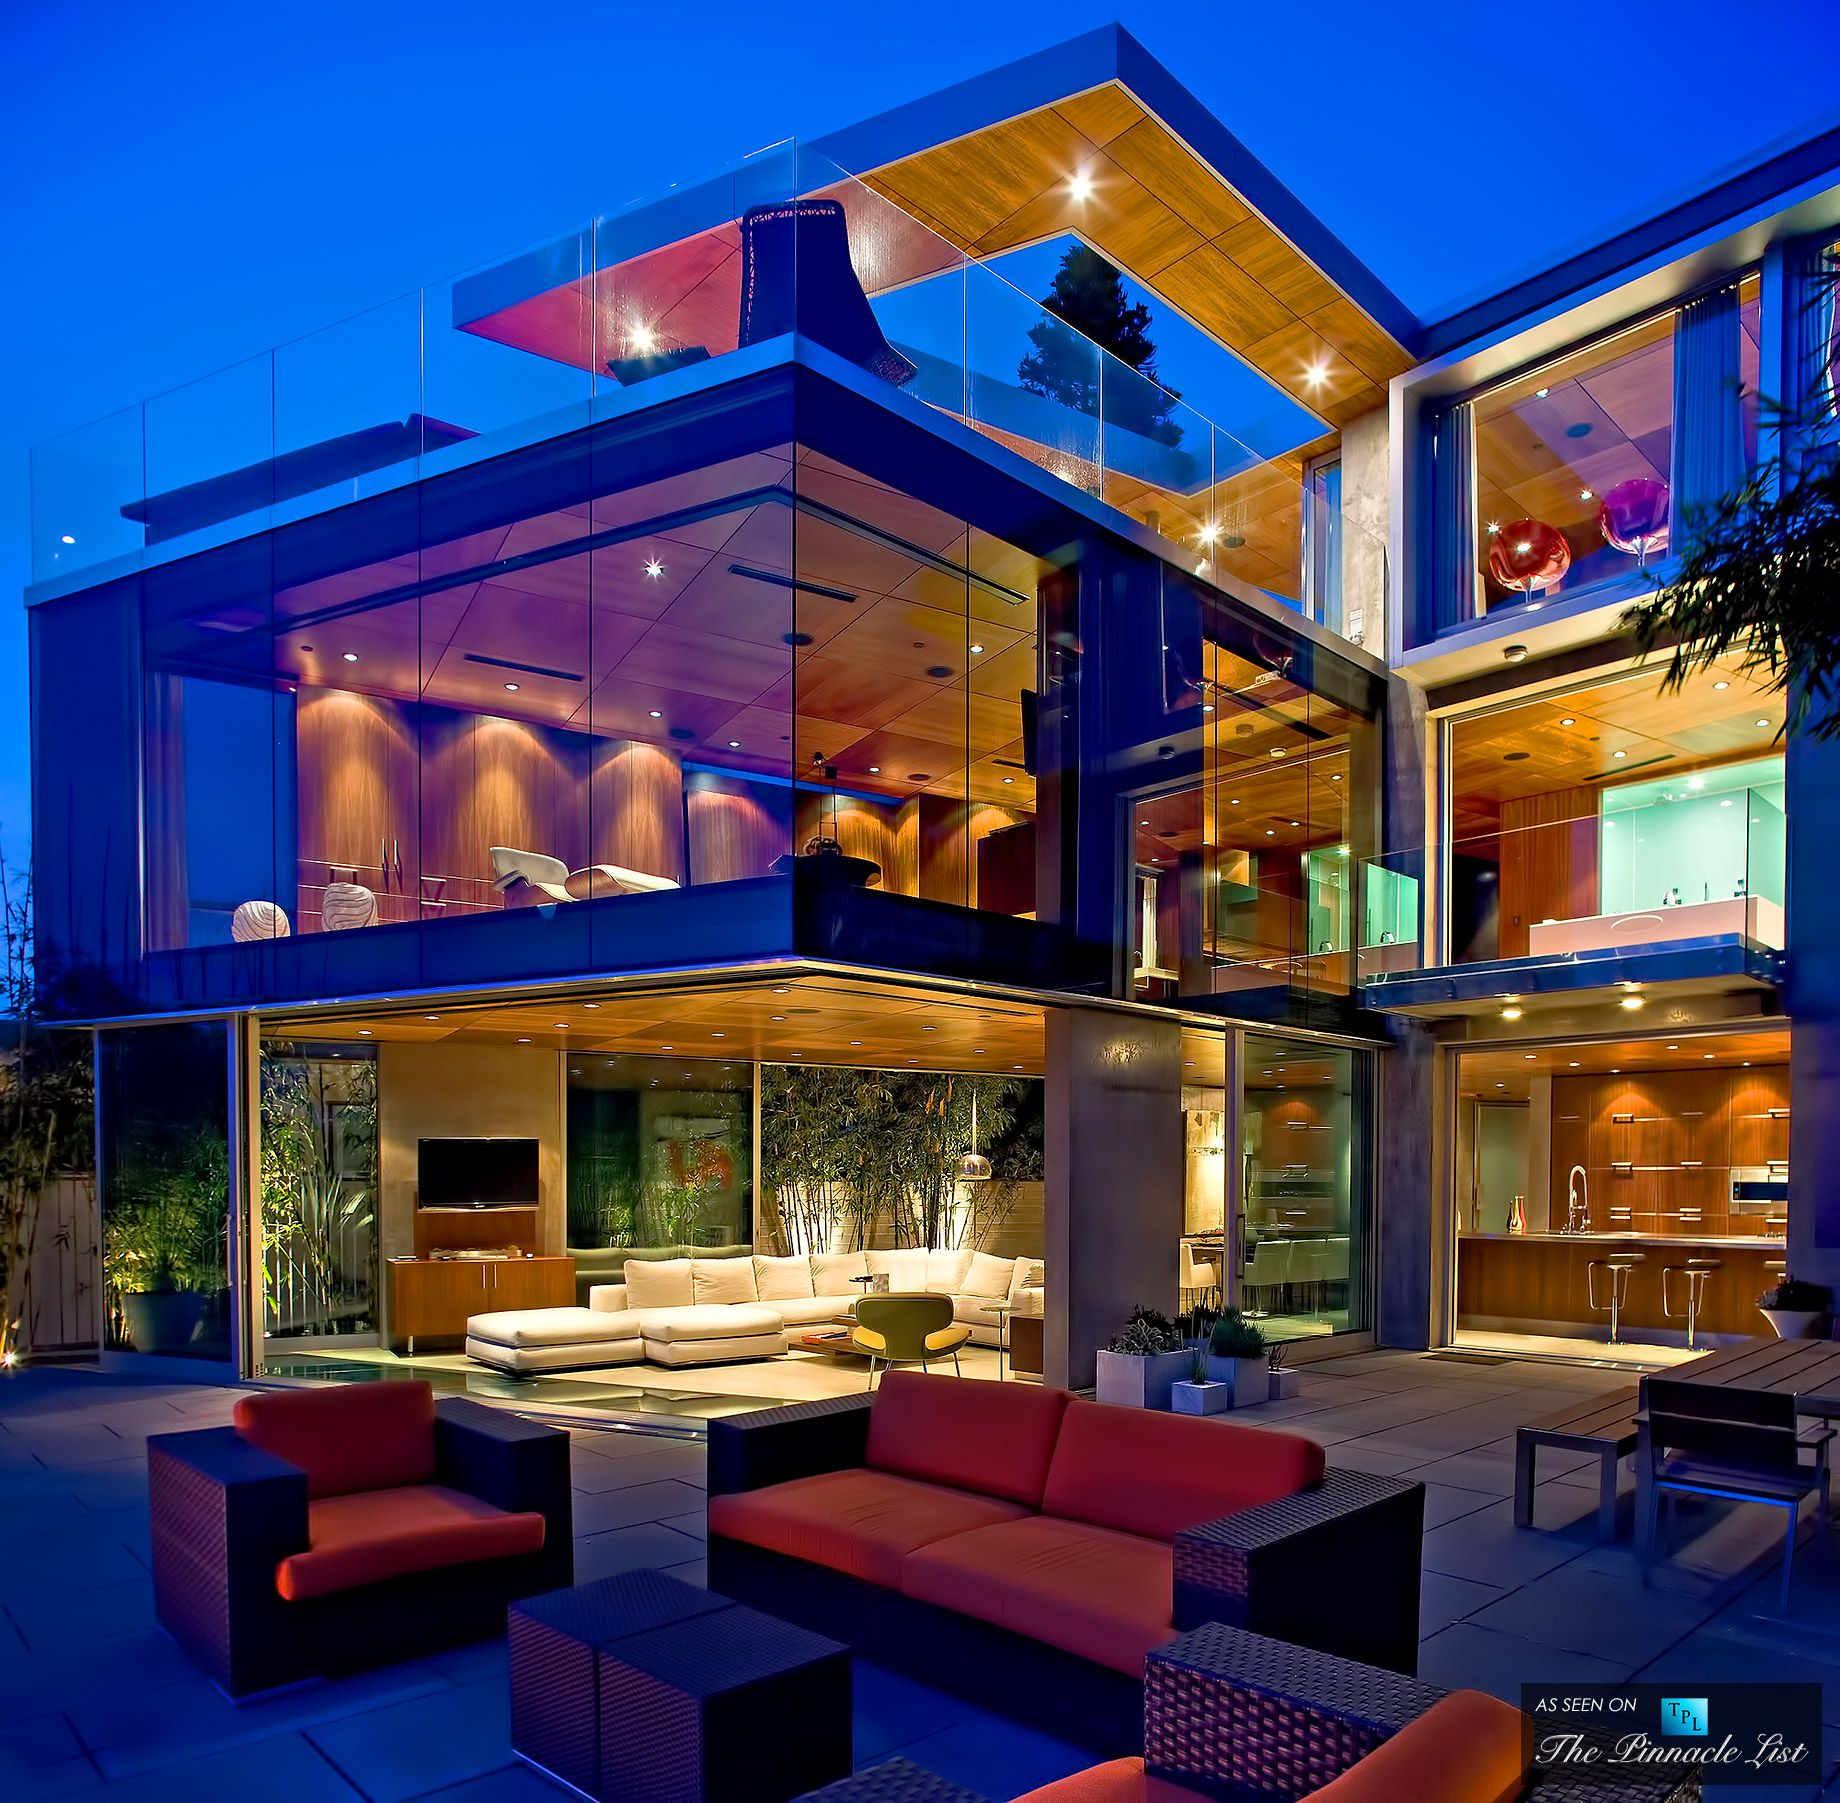 Lemperle glass house residence  san diego ca architect jonathan segal foyers luxus villa also best awesome designs images modern houses dream homes rh pinterest